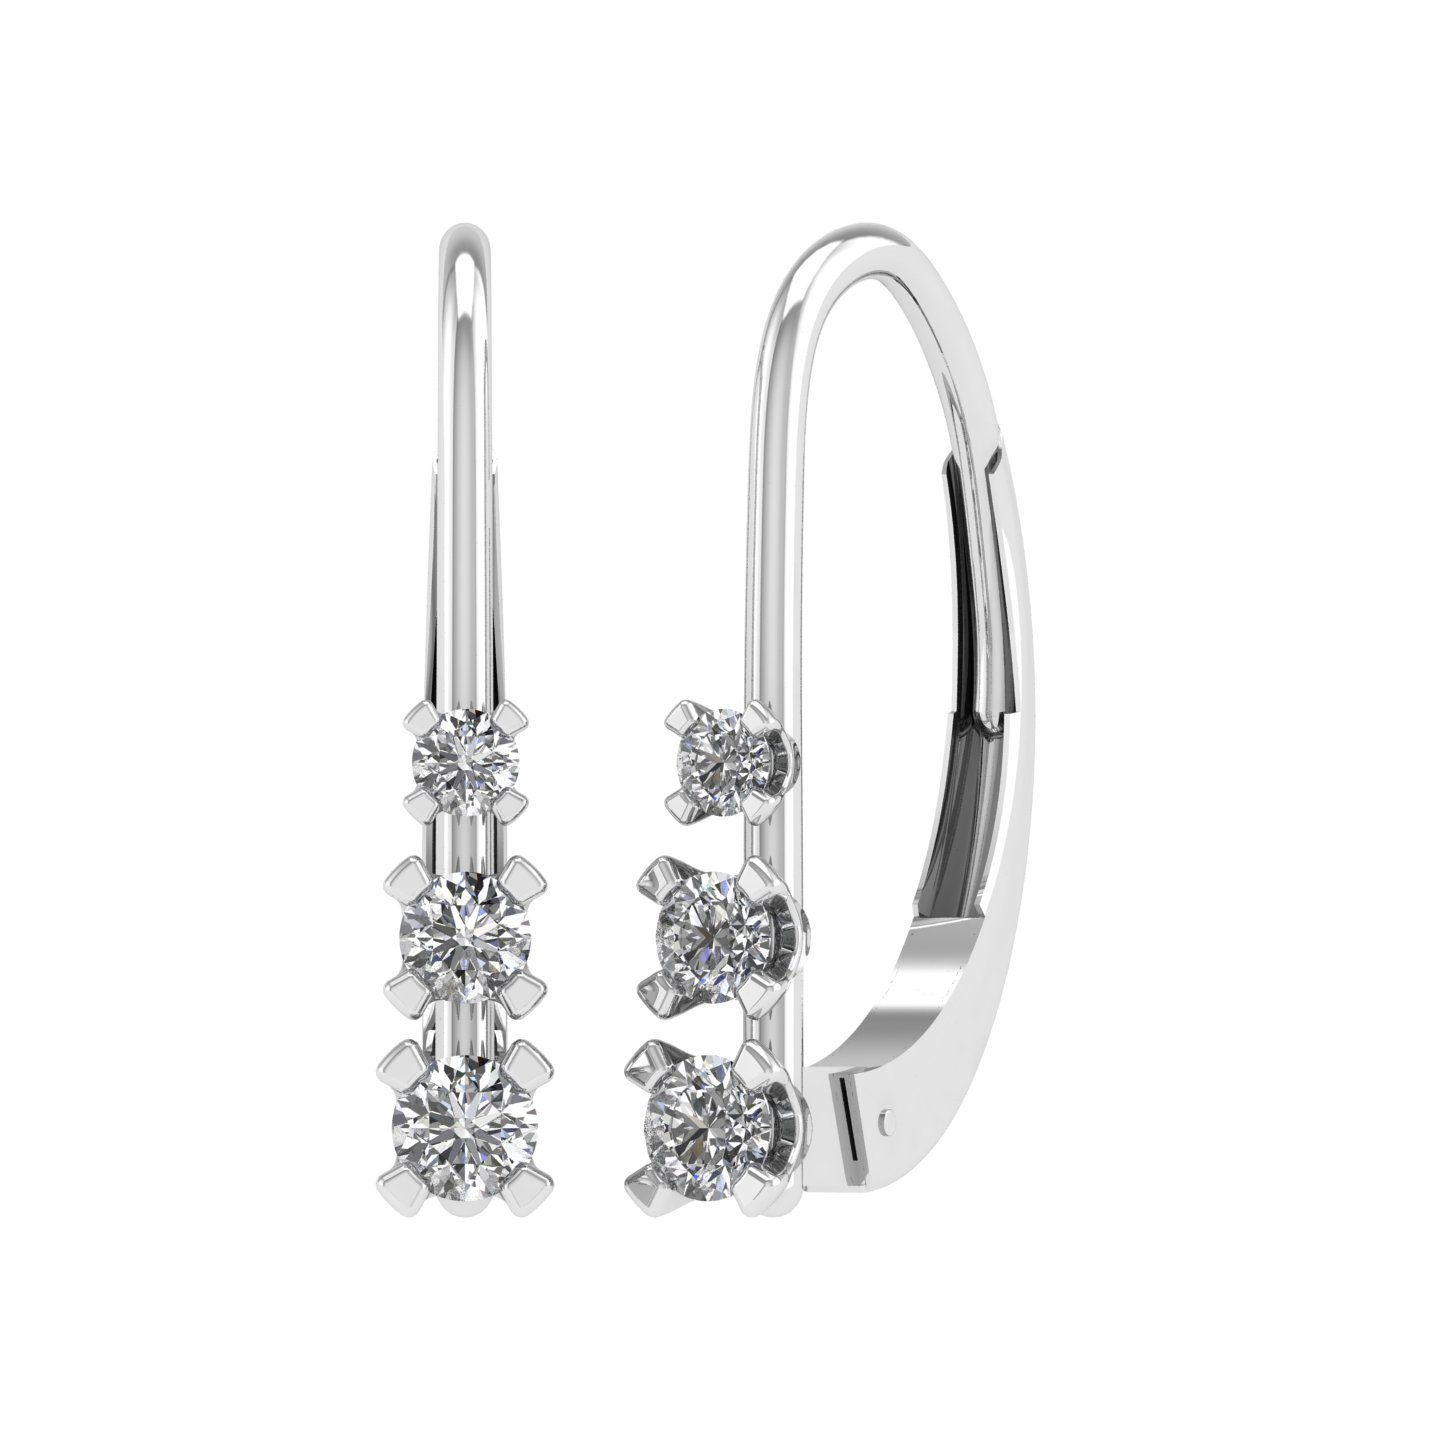 IGI Certified White Diamond Lever Back Earrings in 10K White Gold (1/4 Carat)